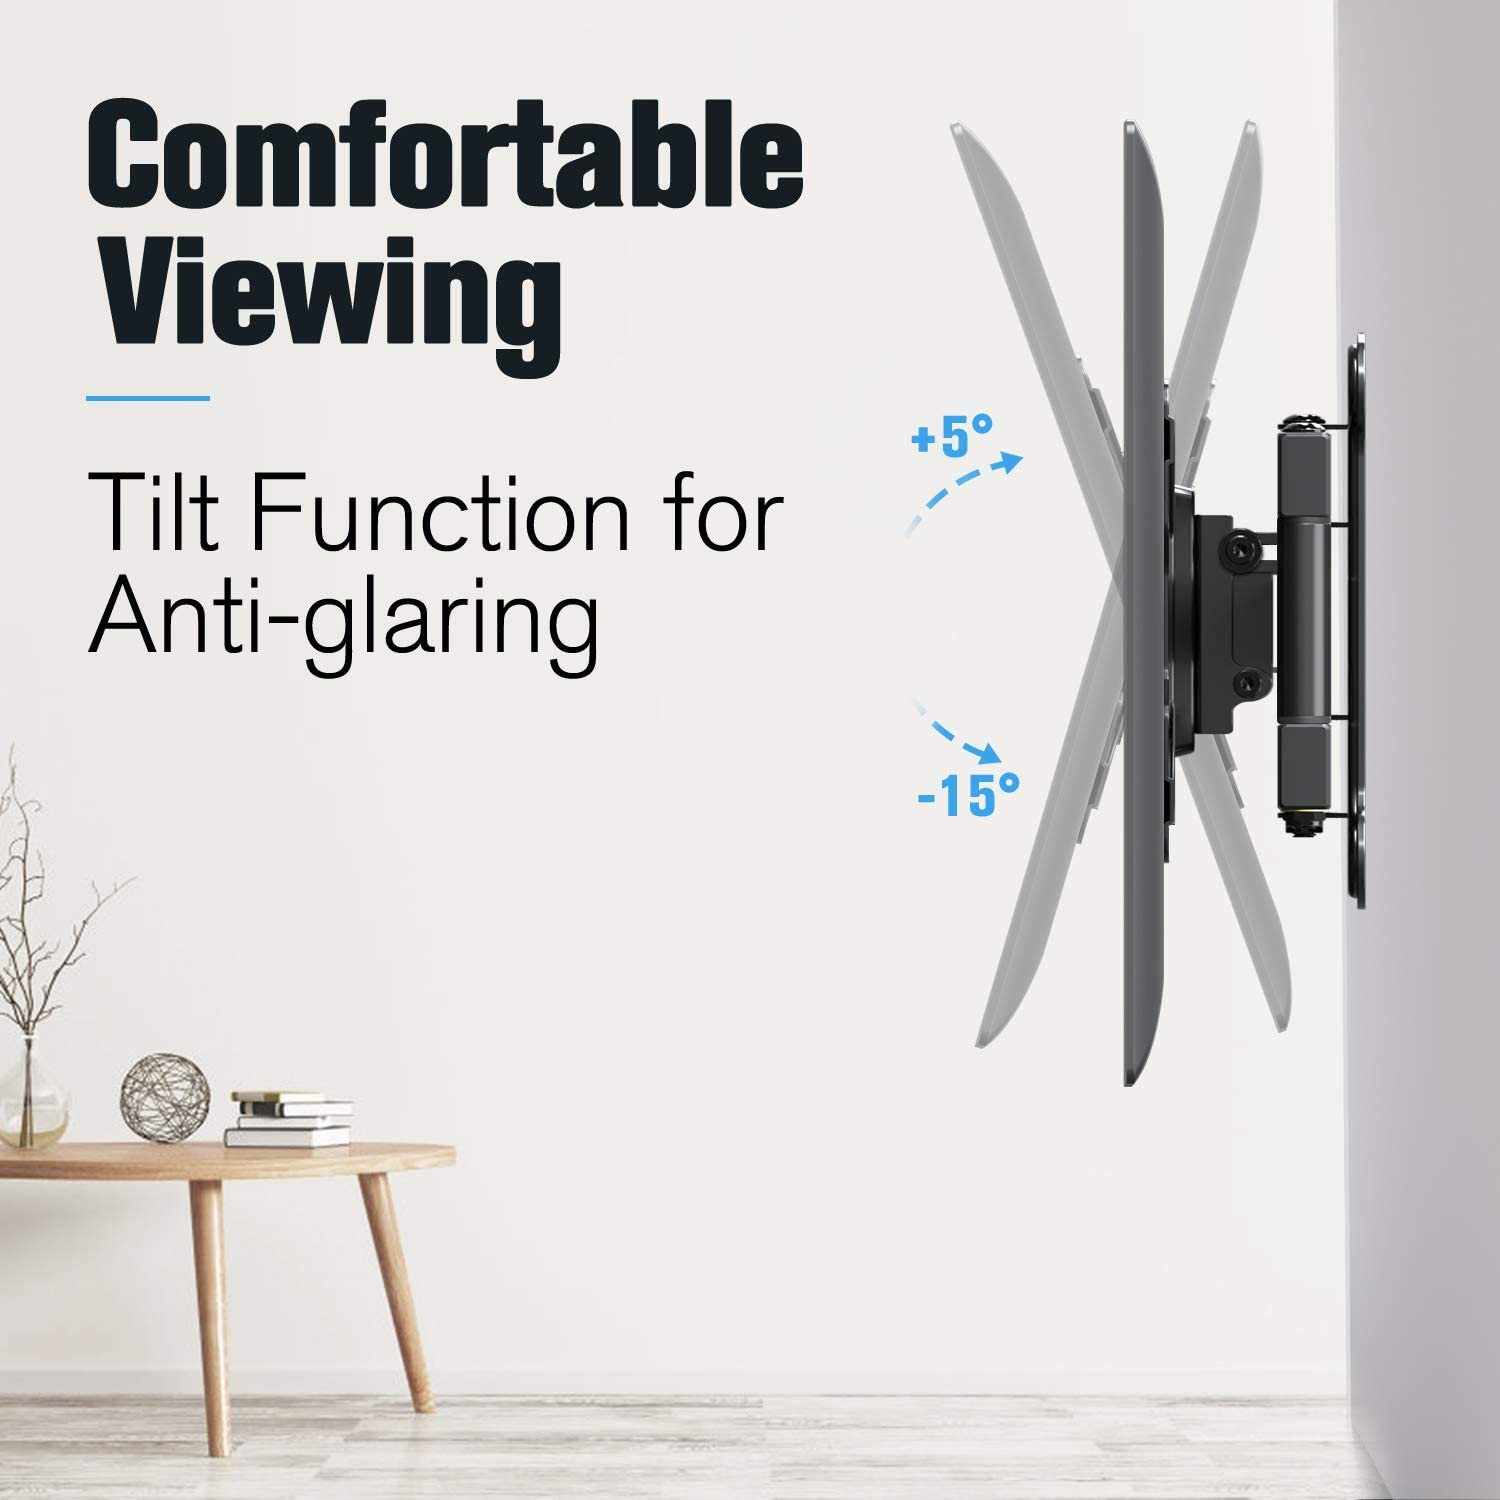 Mounting Dream Full Motion TV Wall Mounts for Most 17-39 Inch LED, LCD TVs up to VESA 200 x 200mm and 60 LBS Loading Capacity, TV Bracket with Articulating Arms Perfect Center Design